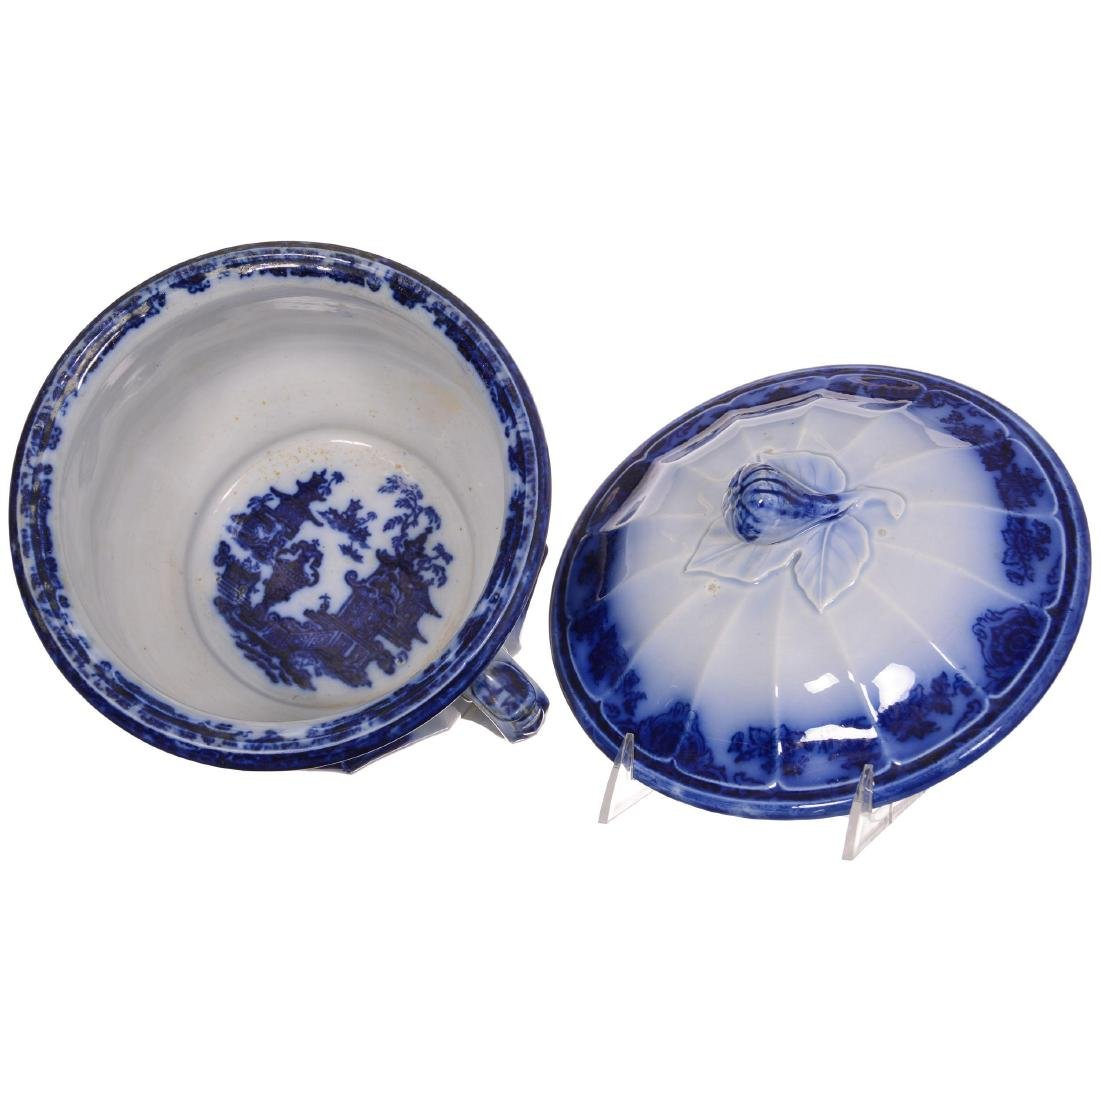 Flow Blue the Temple Pattern Covered Chamber Pot - 3